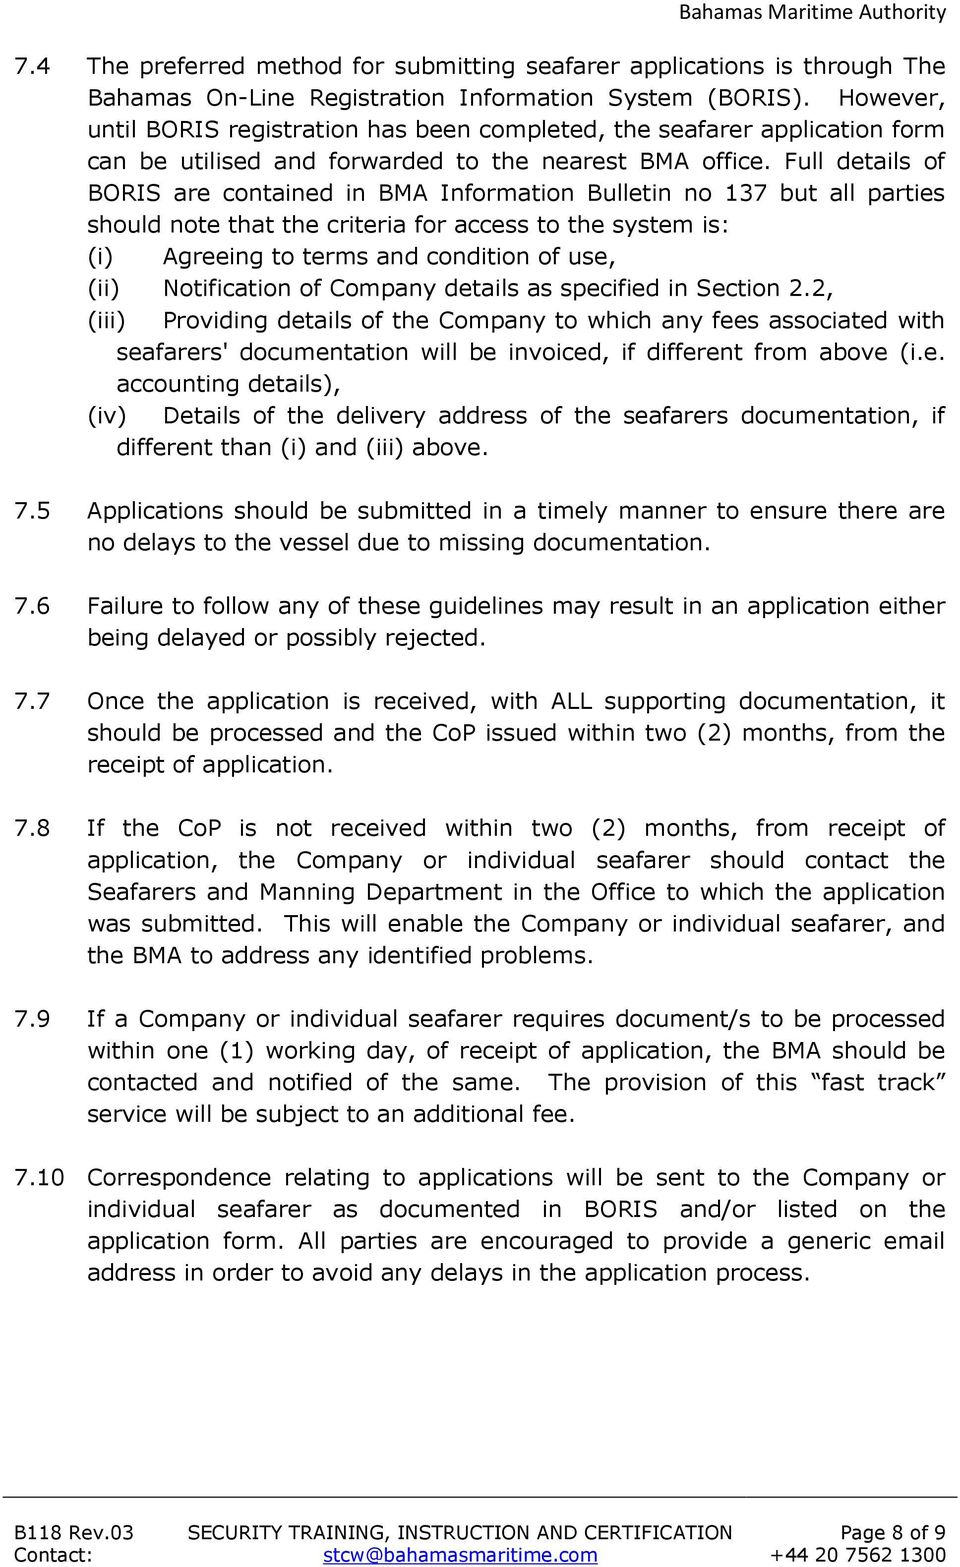 Full details of BORIS are contained in BMA Information Bulletin no 137 but all parties should note that the criteria for access to the system is: (i) Agreeing to terms and condition of use, (ii)